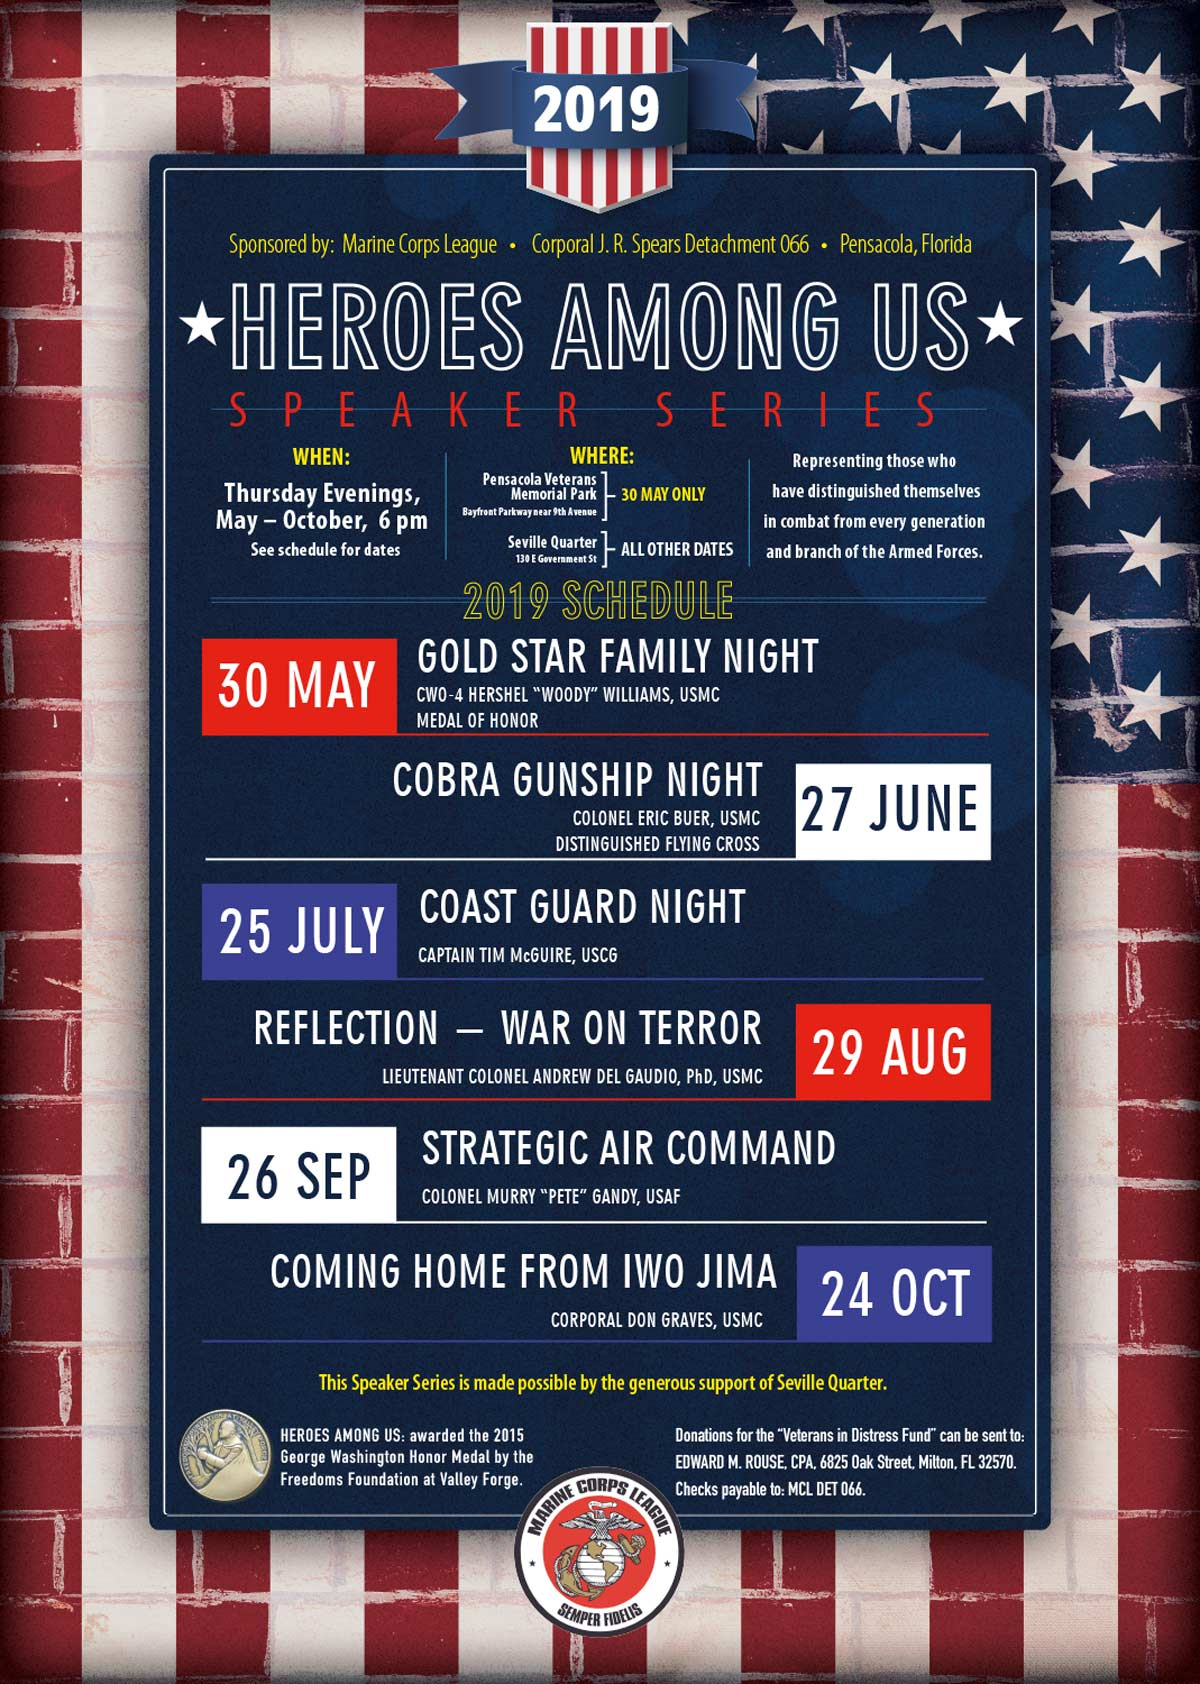 2019 Heros Among Us Schedule Announced